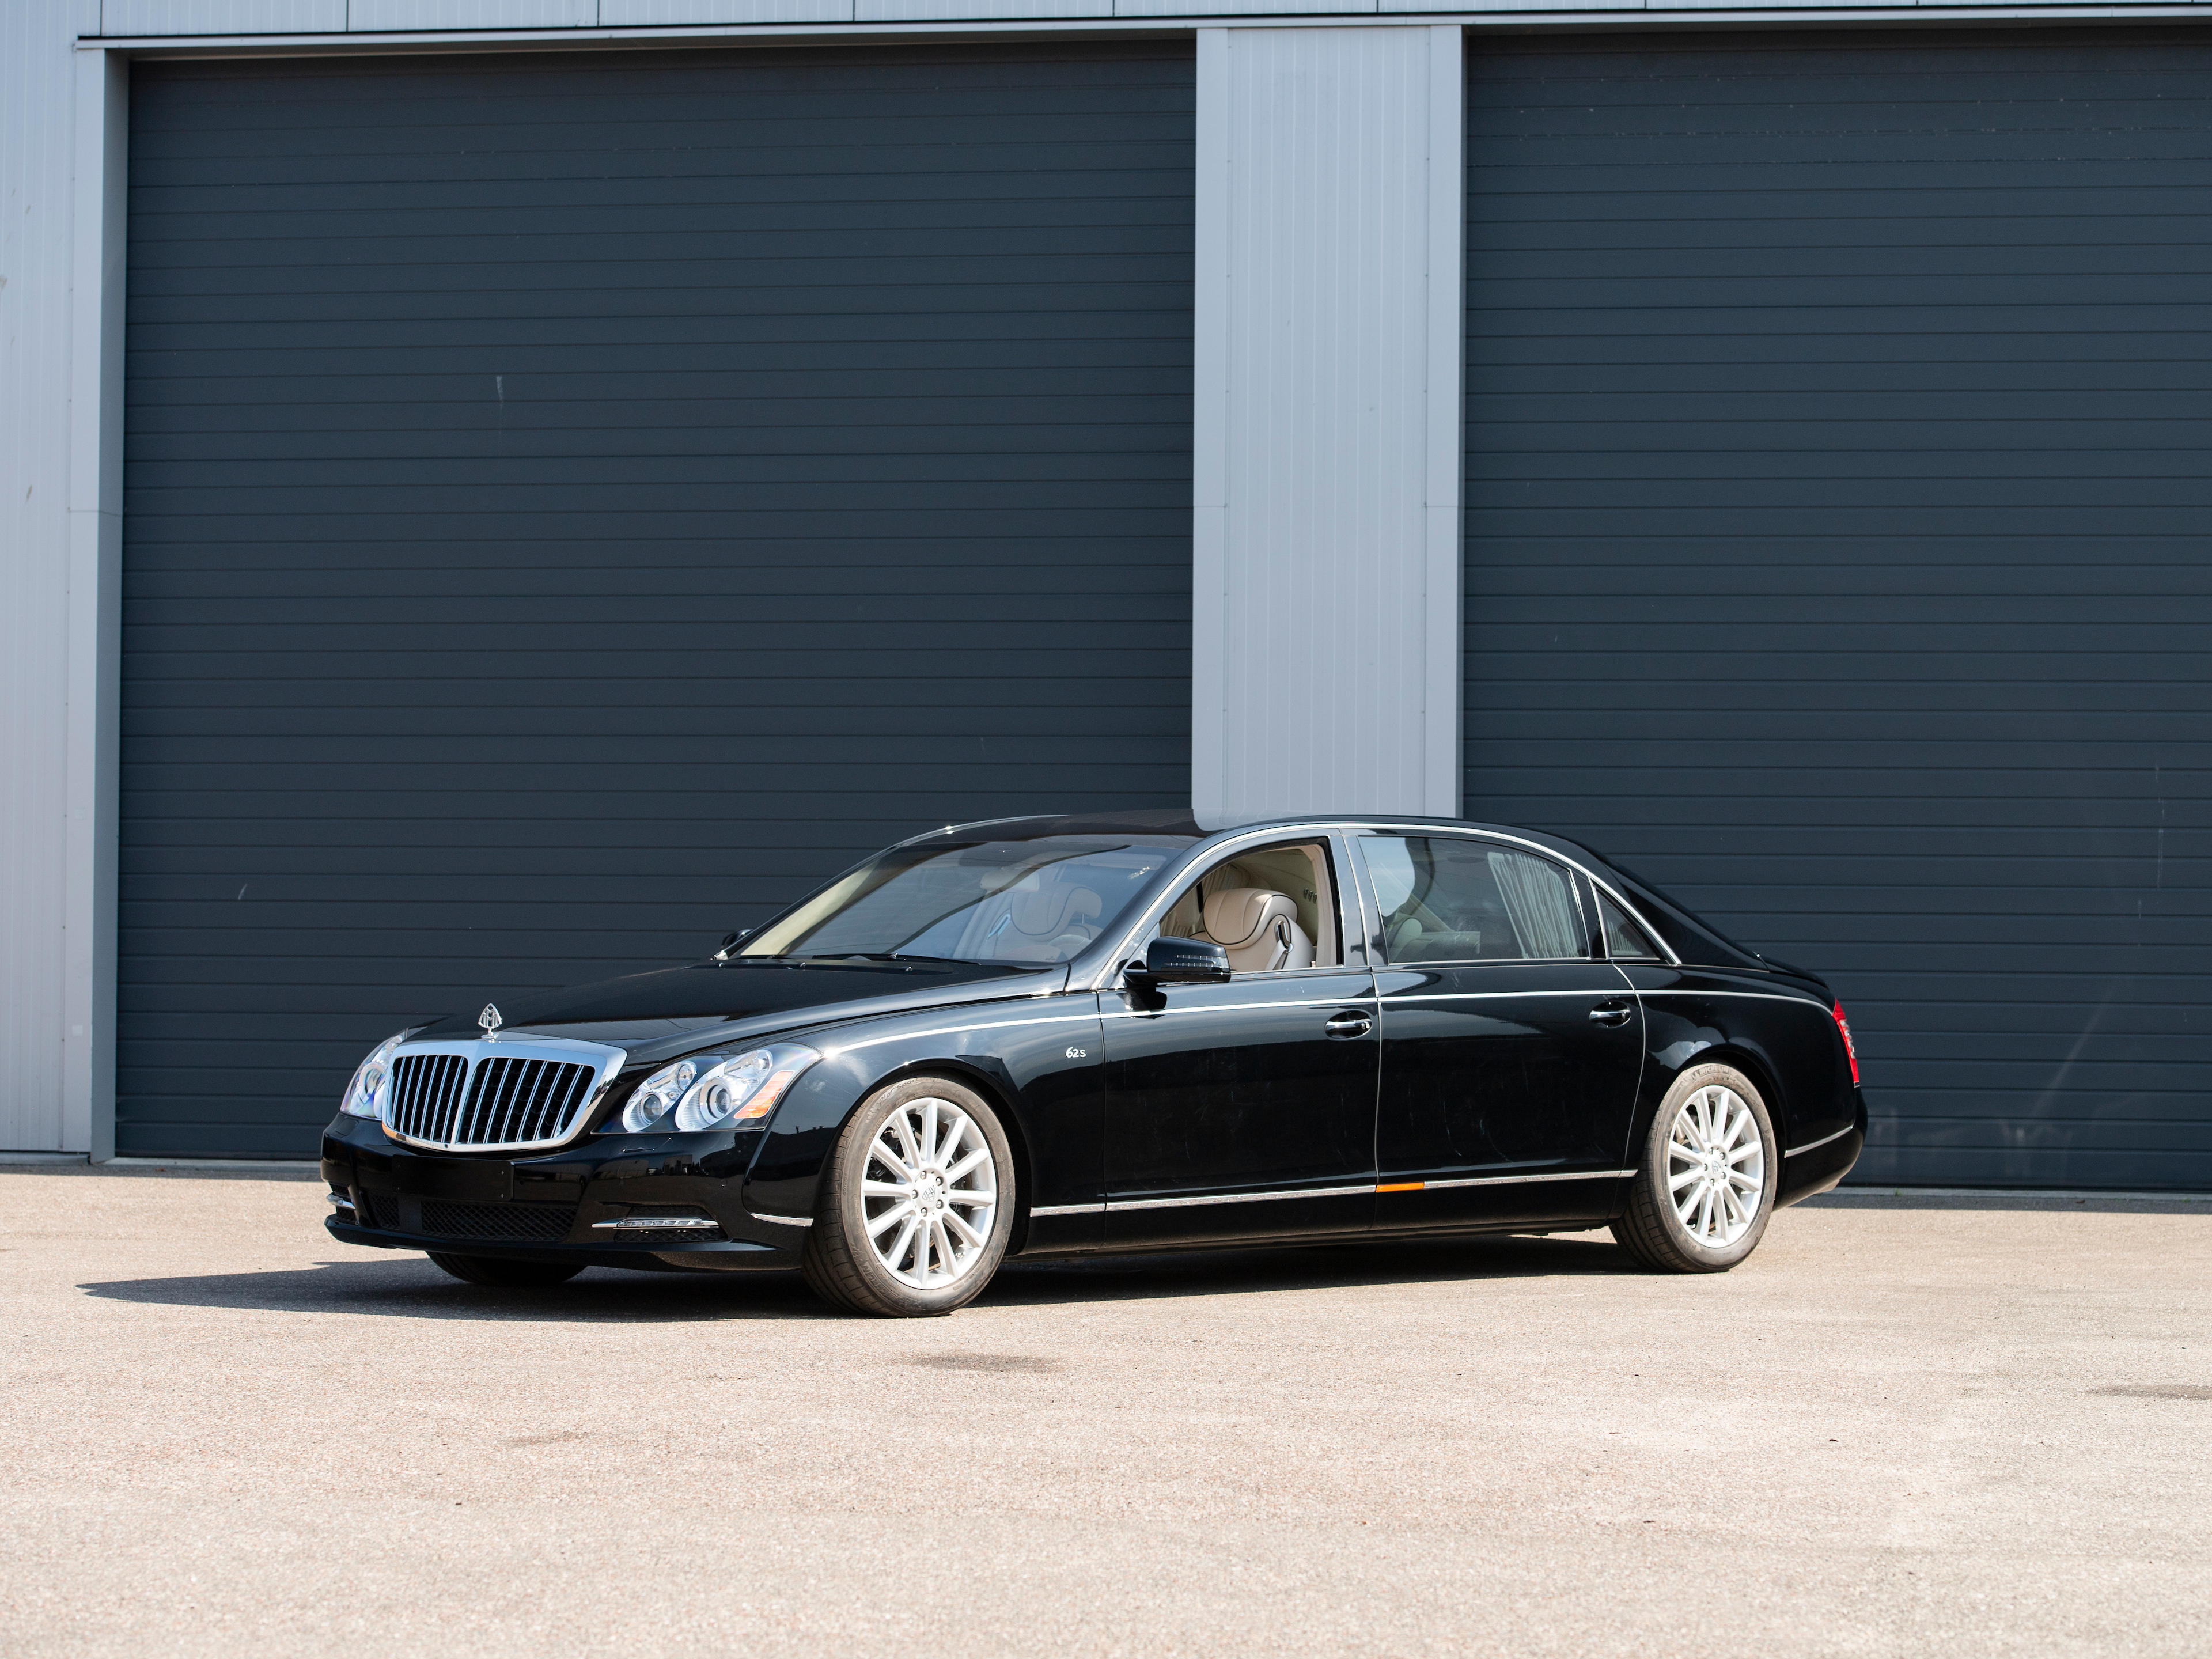 2012 Maybach 62S Saloon LWB  Chassis no. WDB2401771 A 003313